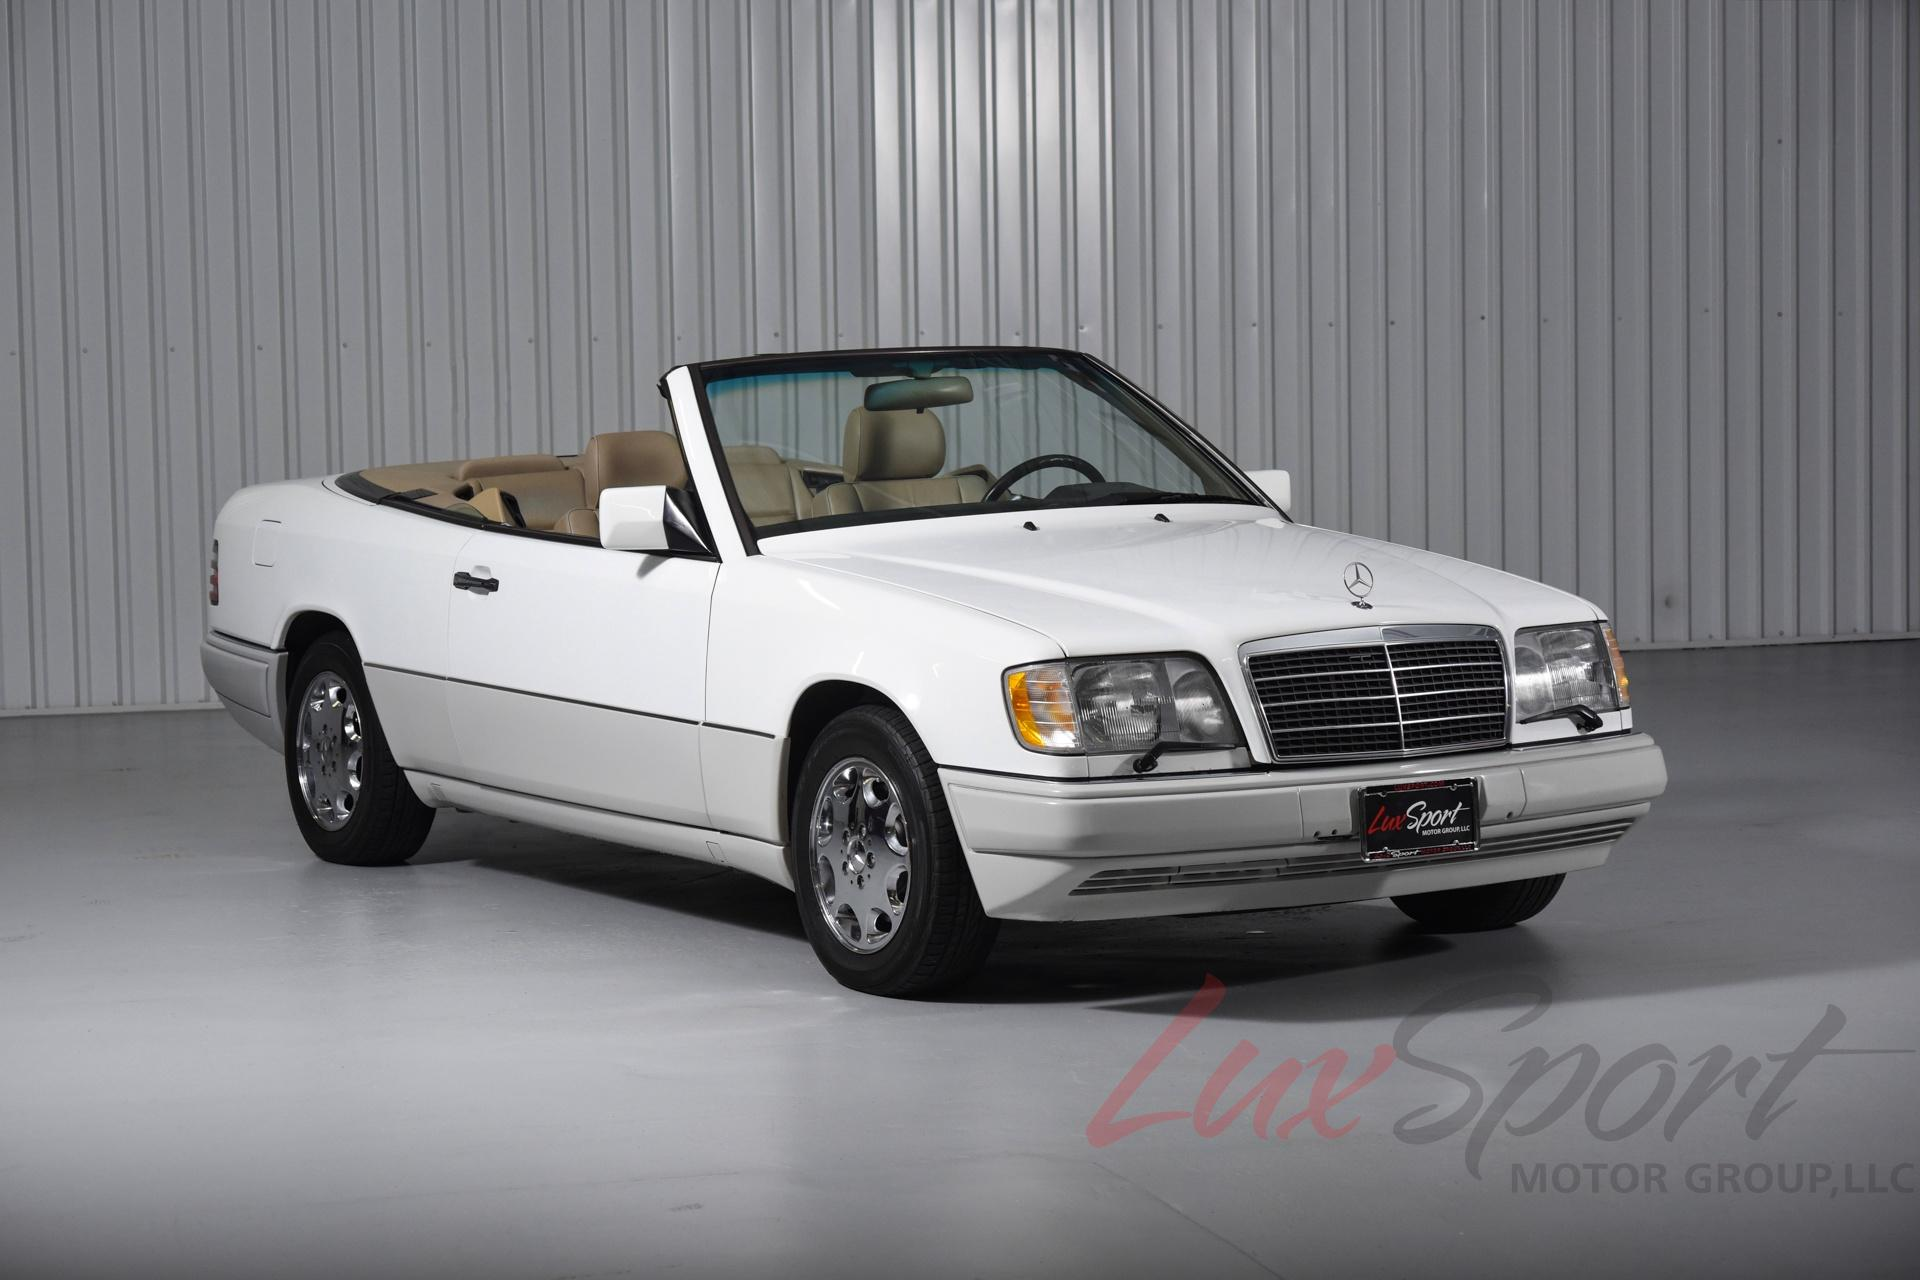 1995 mercedes benz e320 cabriolet e320 stock 1995124 for for Mercedes benz for sale ny